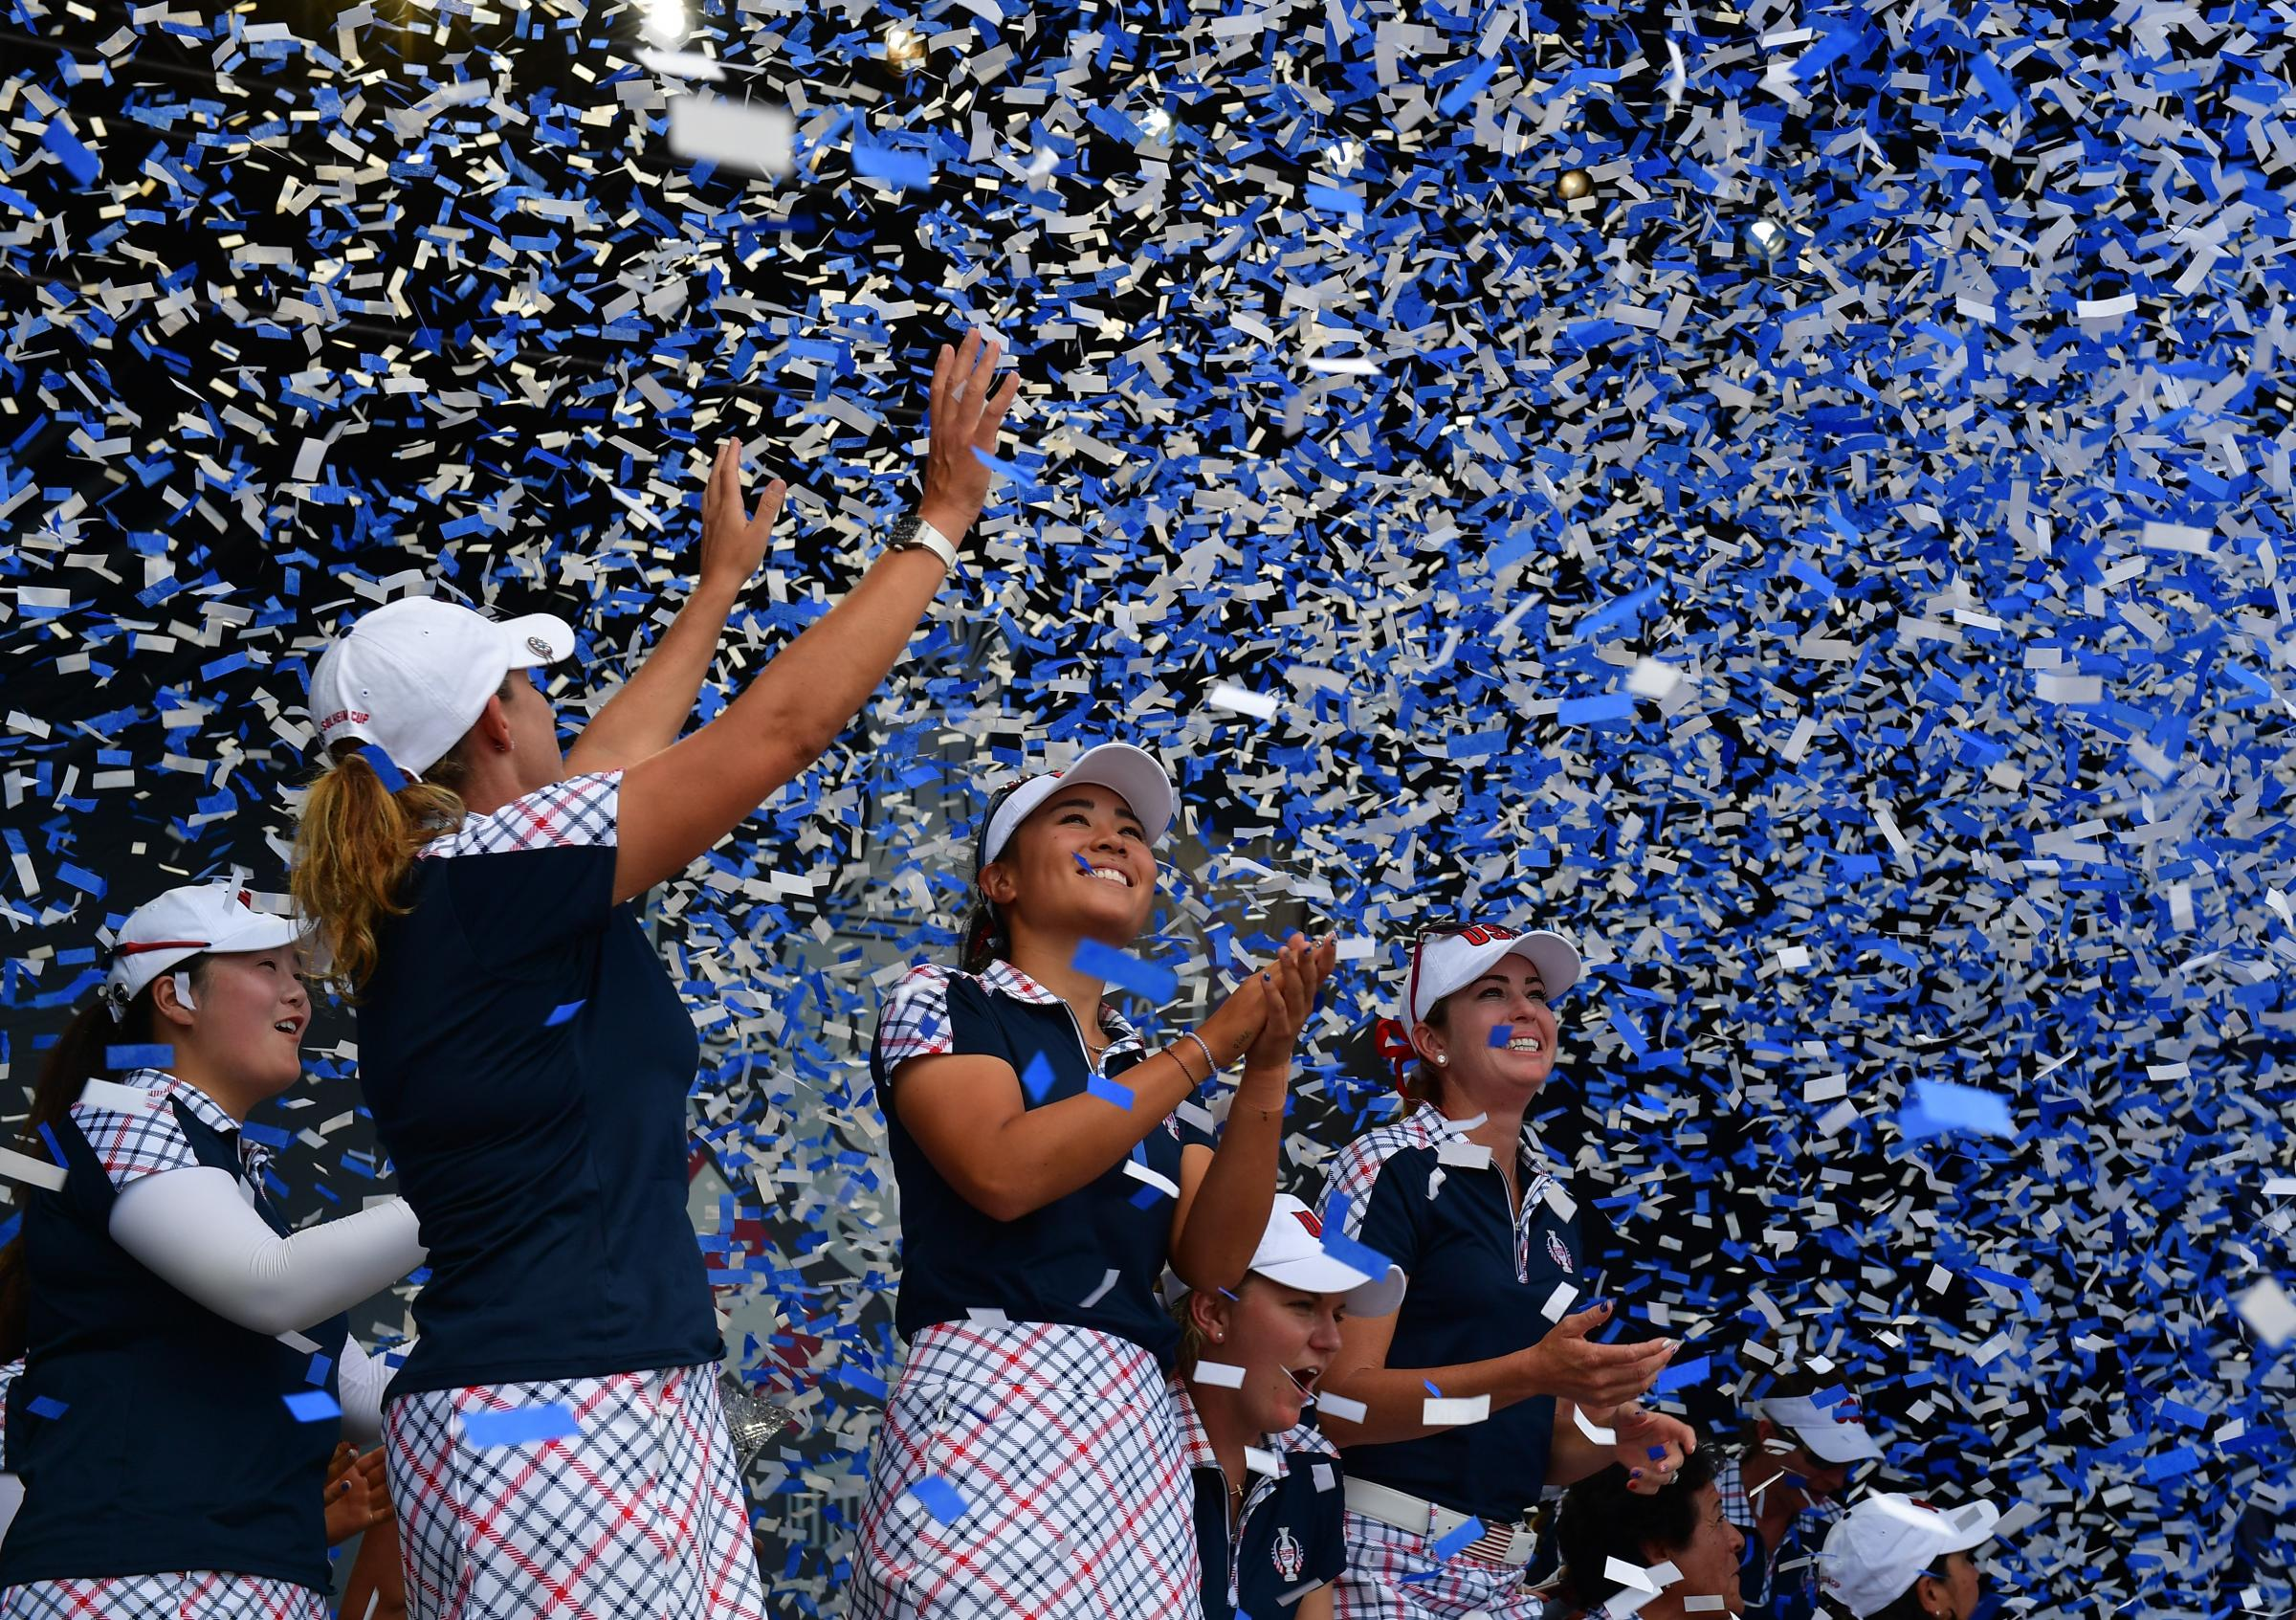 Cristie Kerr,Danielle Kang and Paula Creamerof Team USA celebrate during the closing ceremony